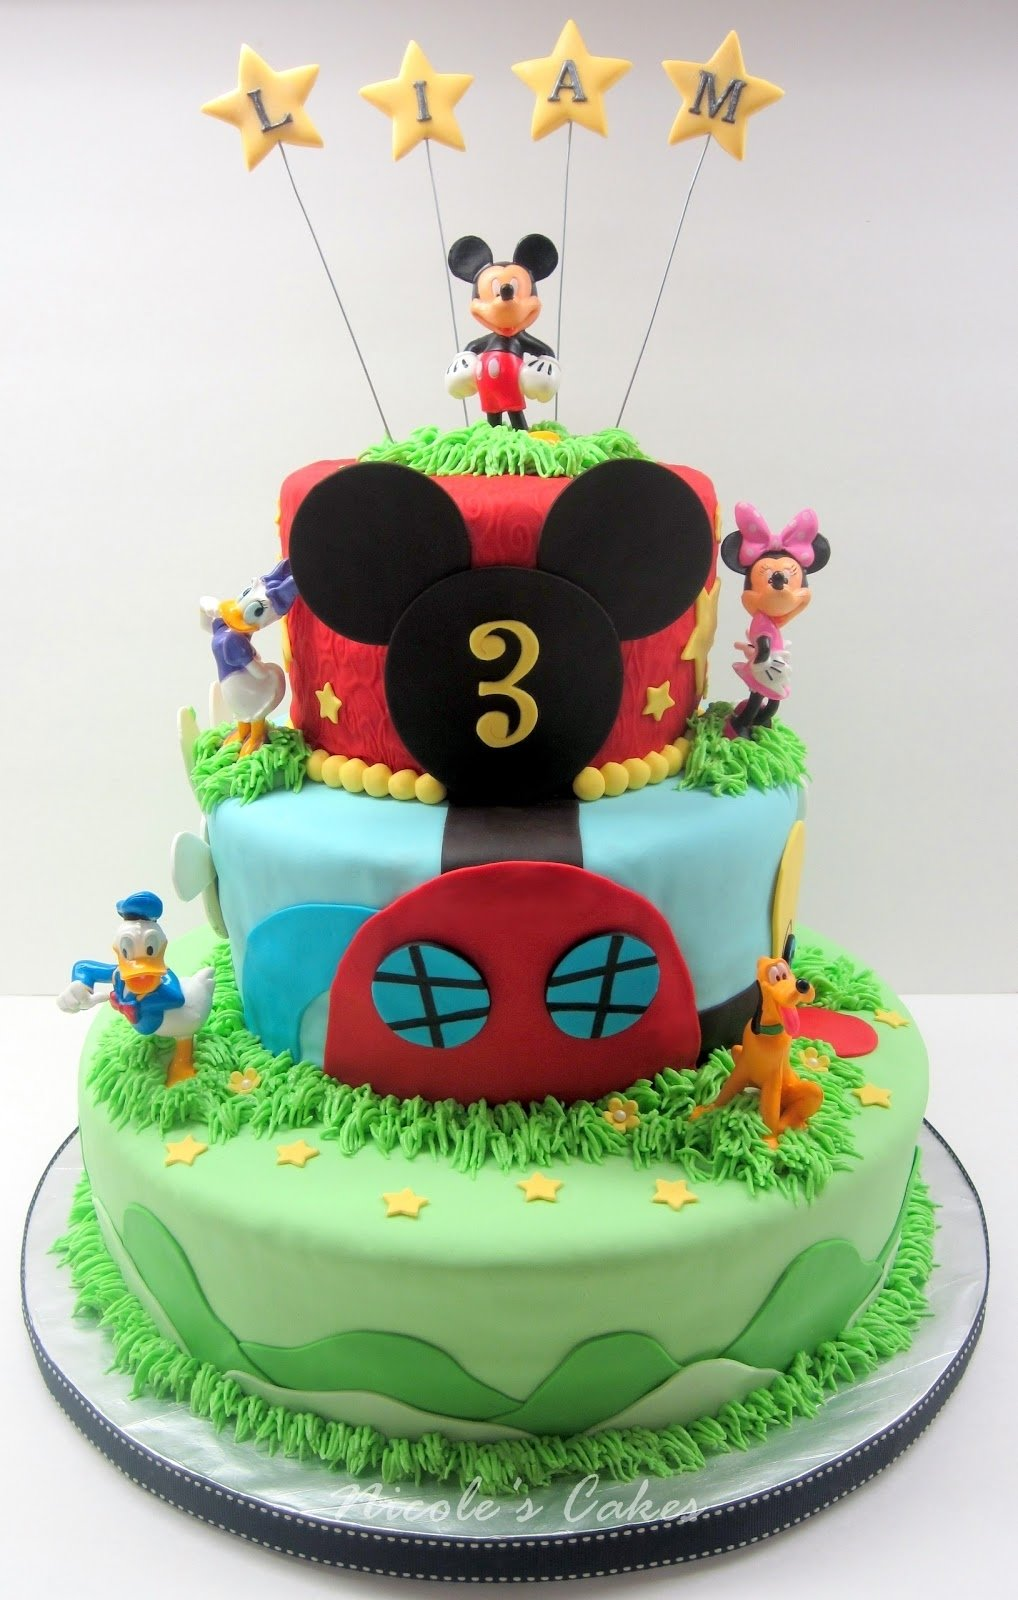 10 Fantastic 3 Year Old Birthday Cake Ideas on birthday cakes mickey mouse clubhouse 3 tier cake